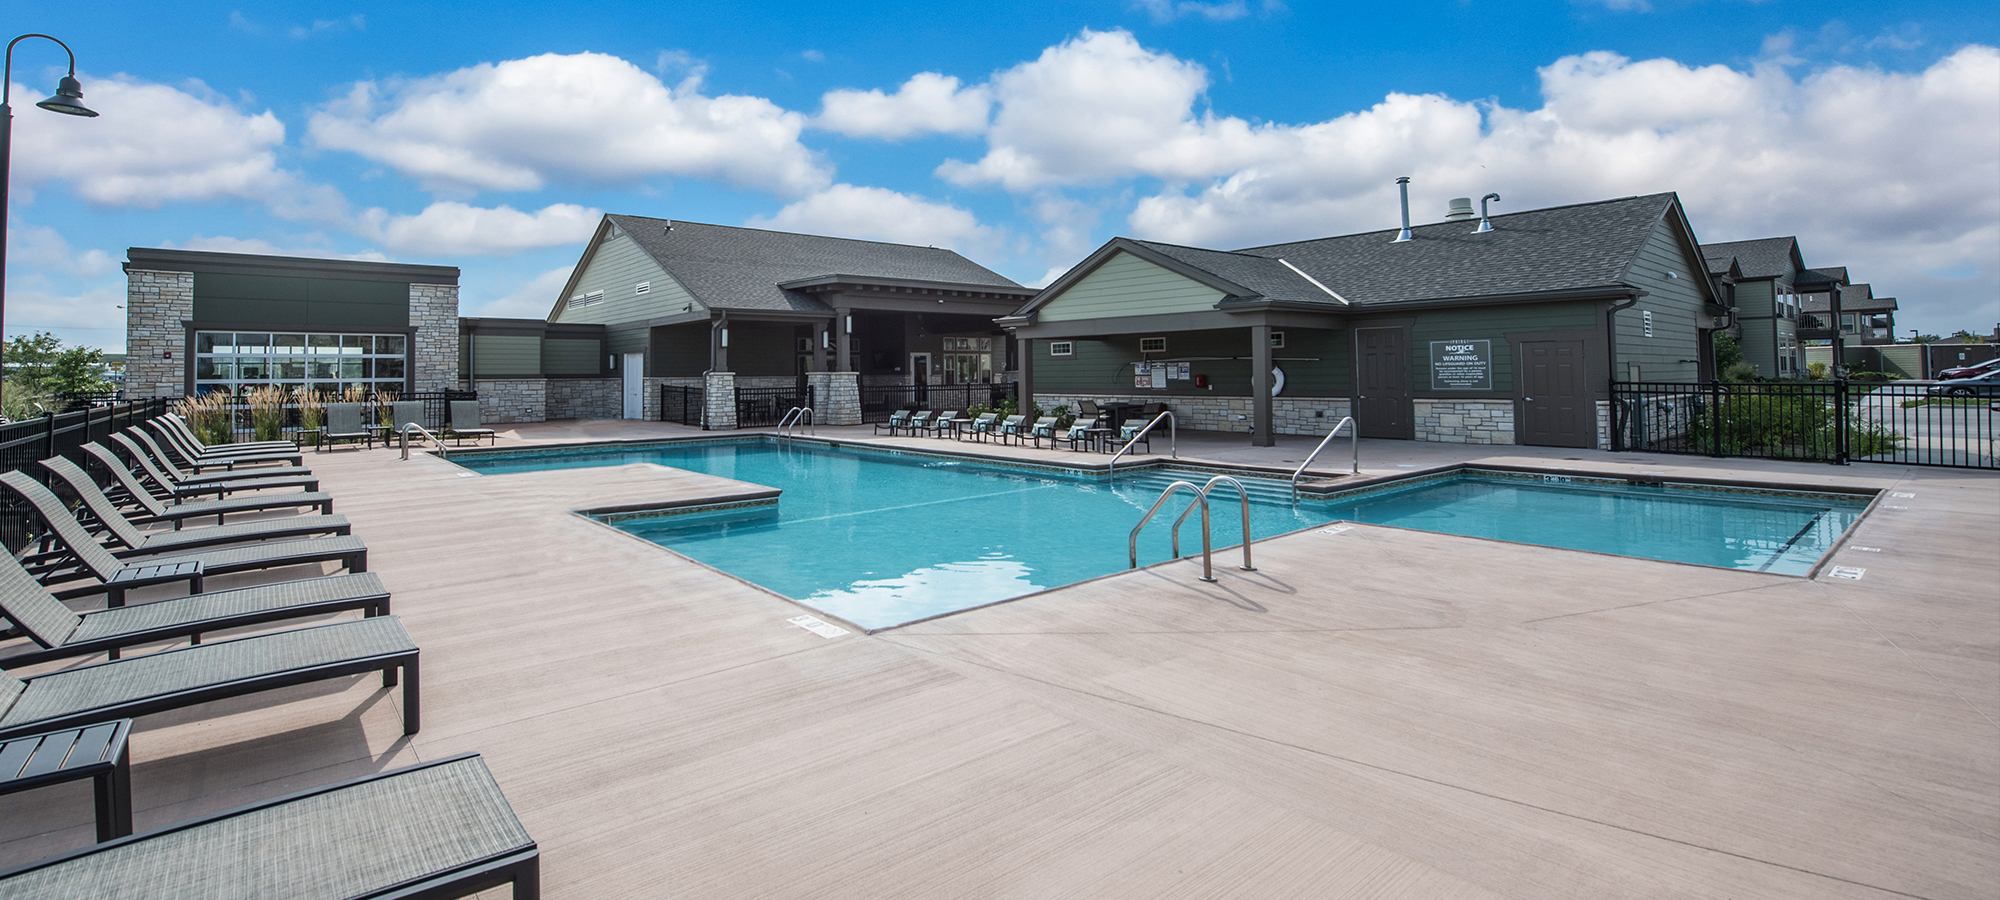 Romeoville, IL Apartments & Townhomes near Southwest ...